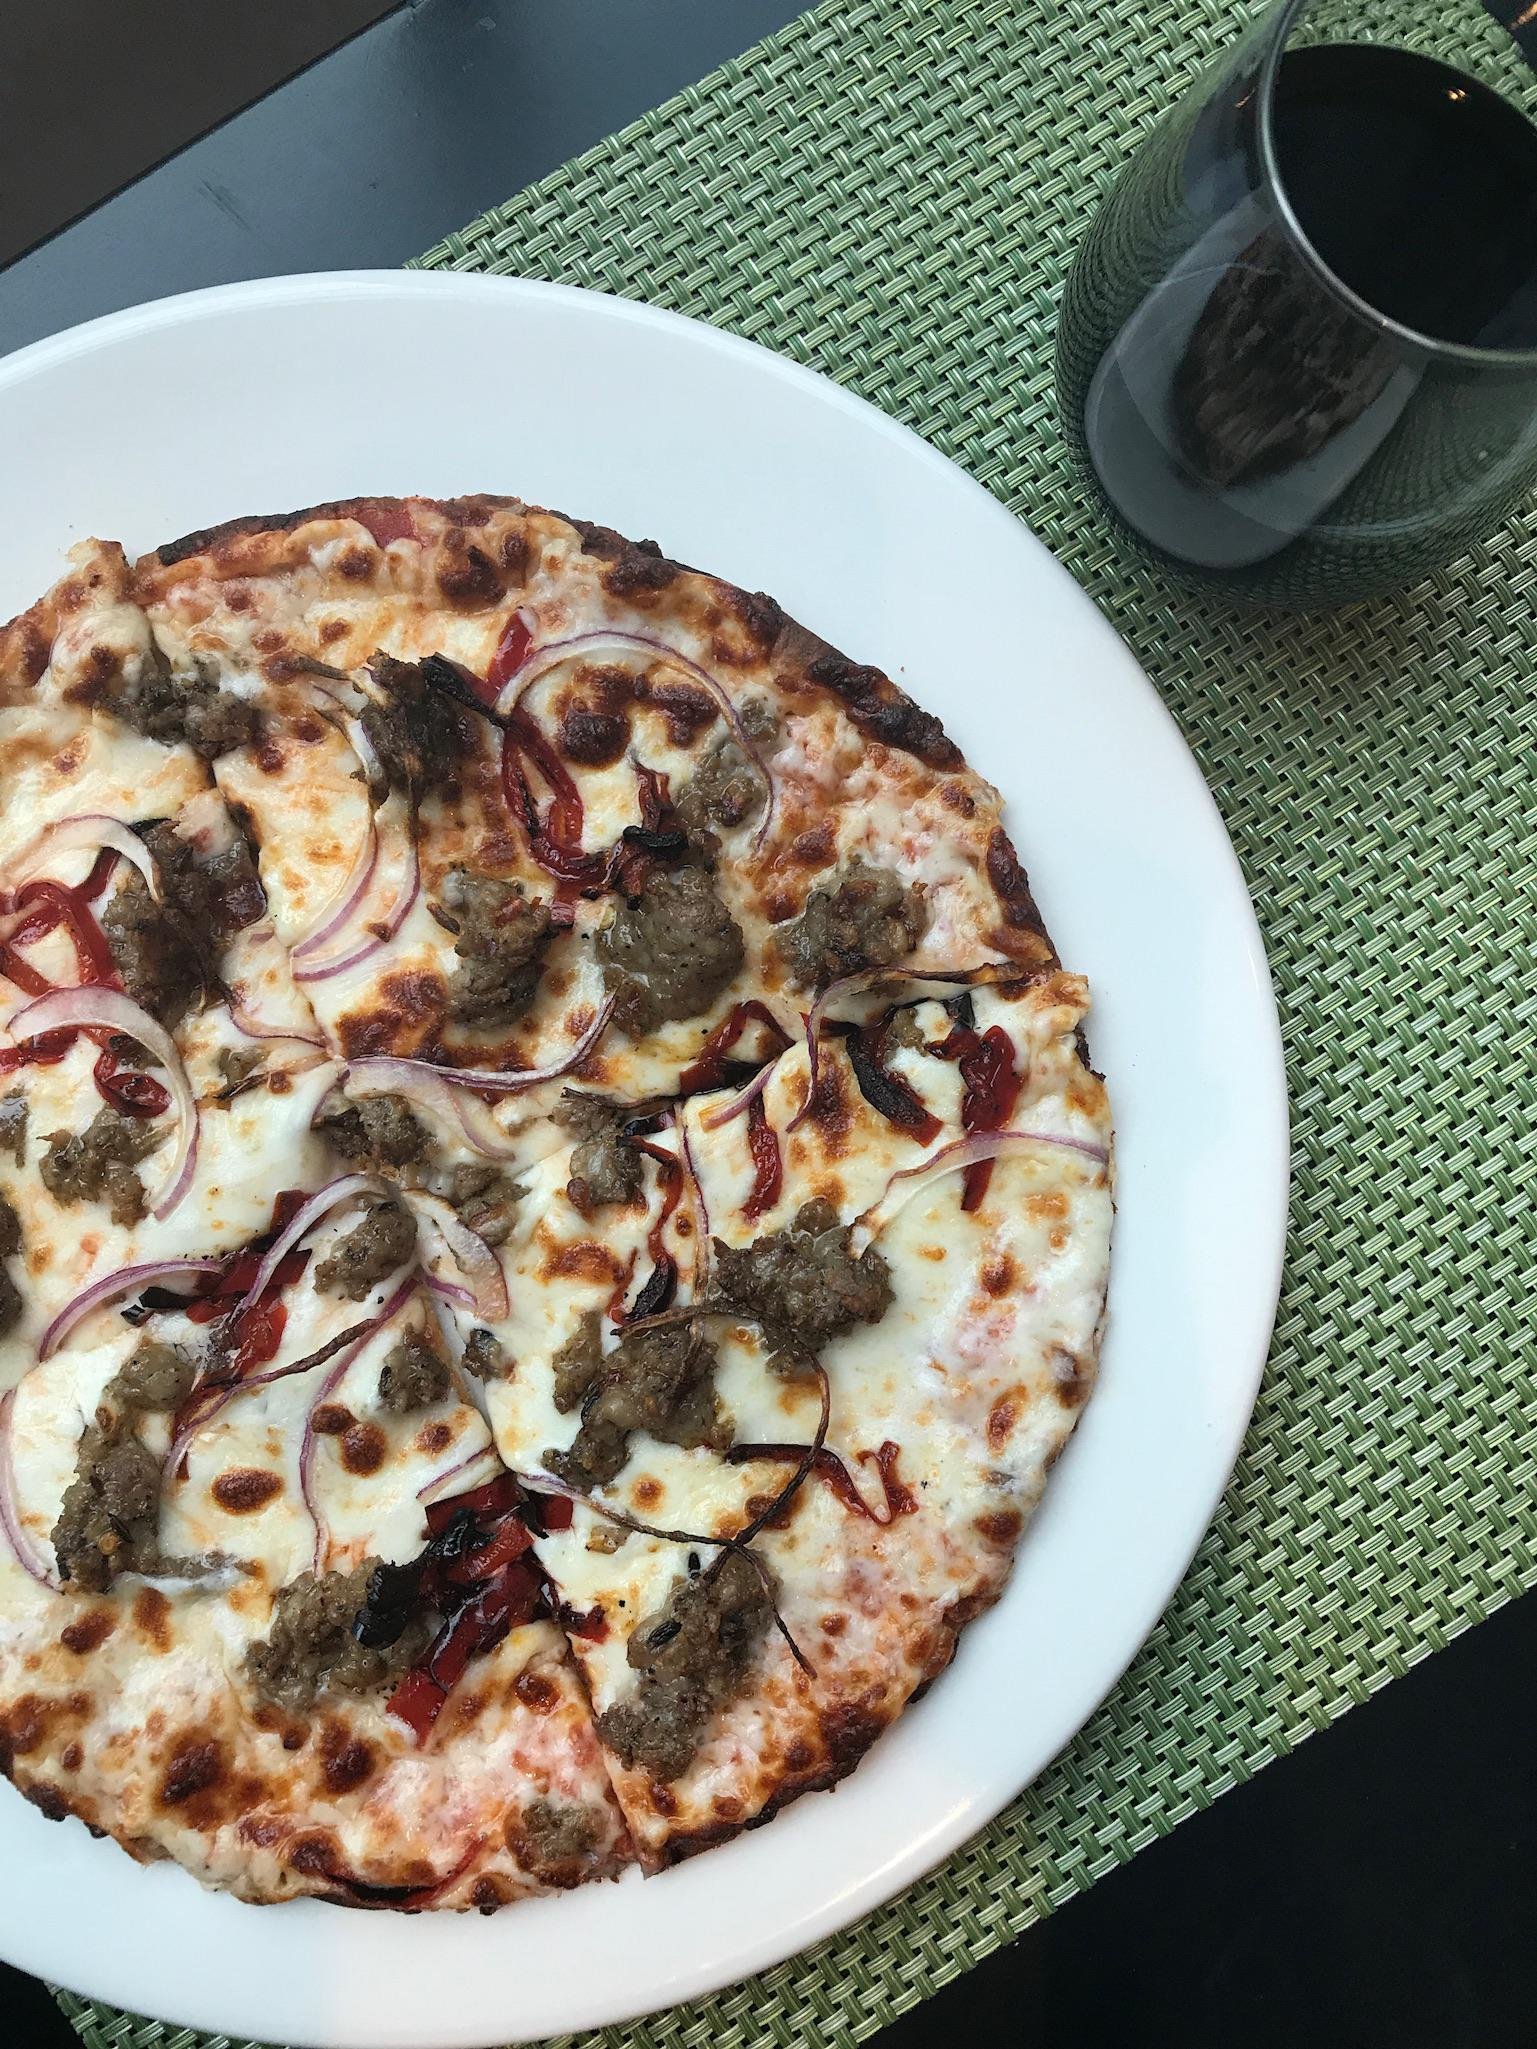 Creole Country Italian Sausage Flatbread Pizza Photo